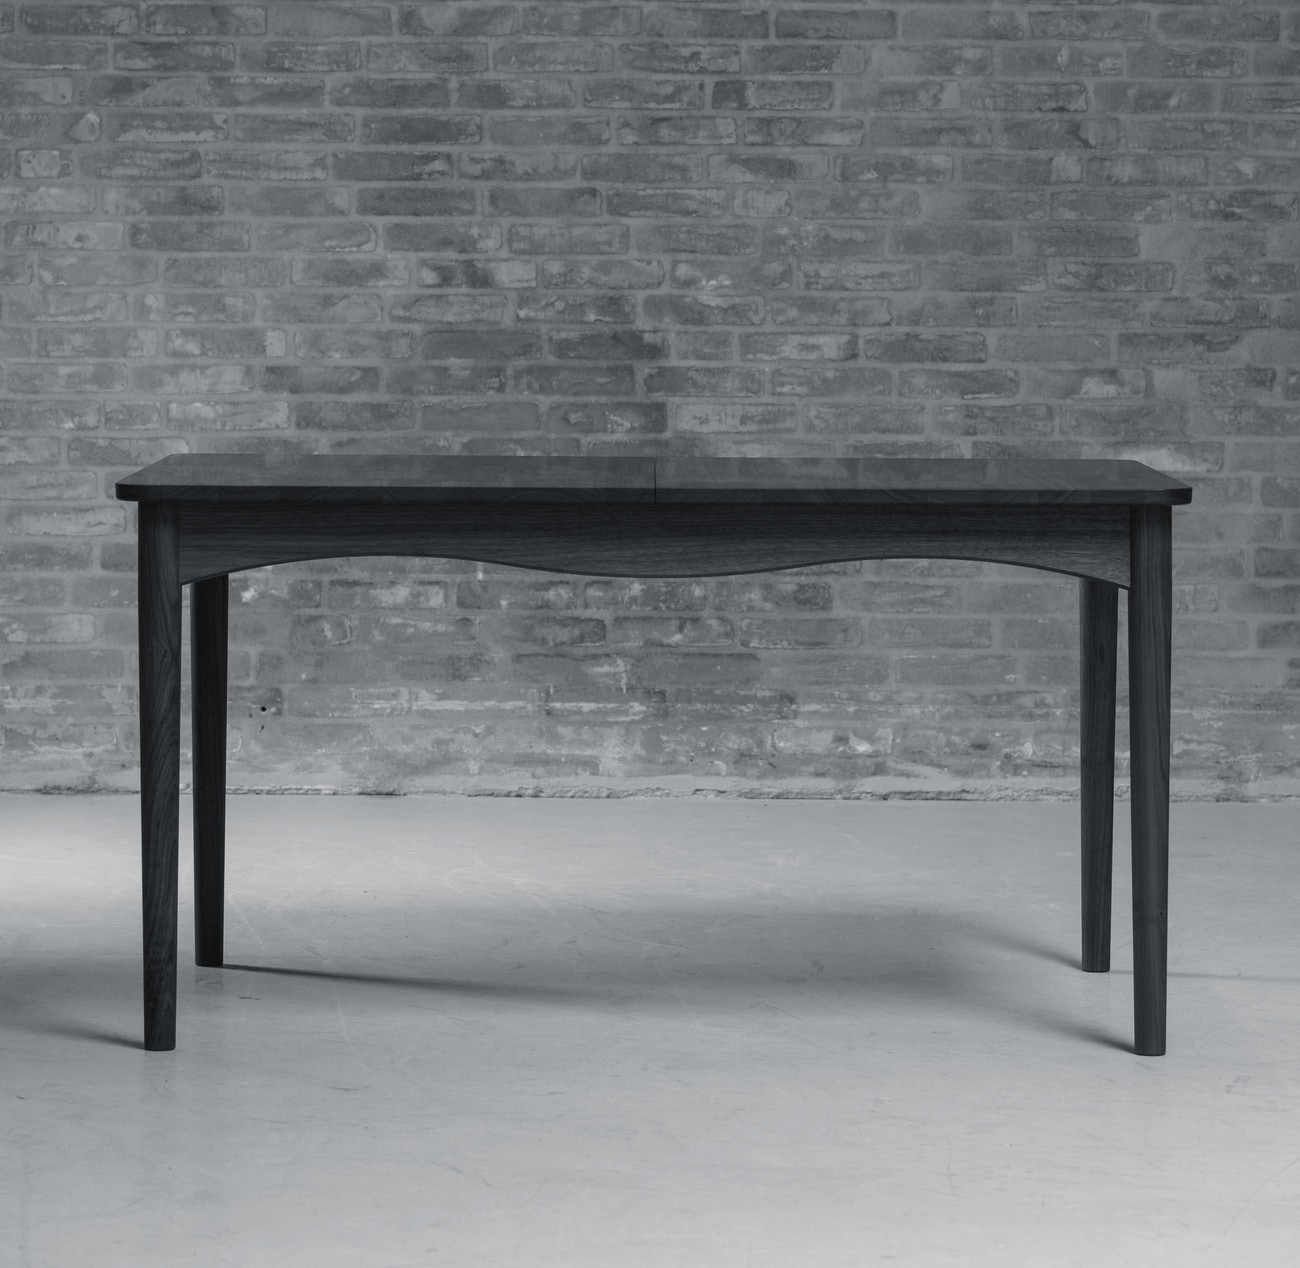 Finn Juhl Bovirke Table